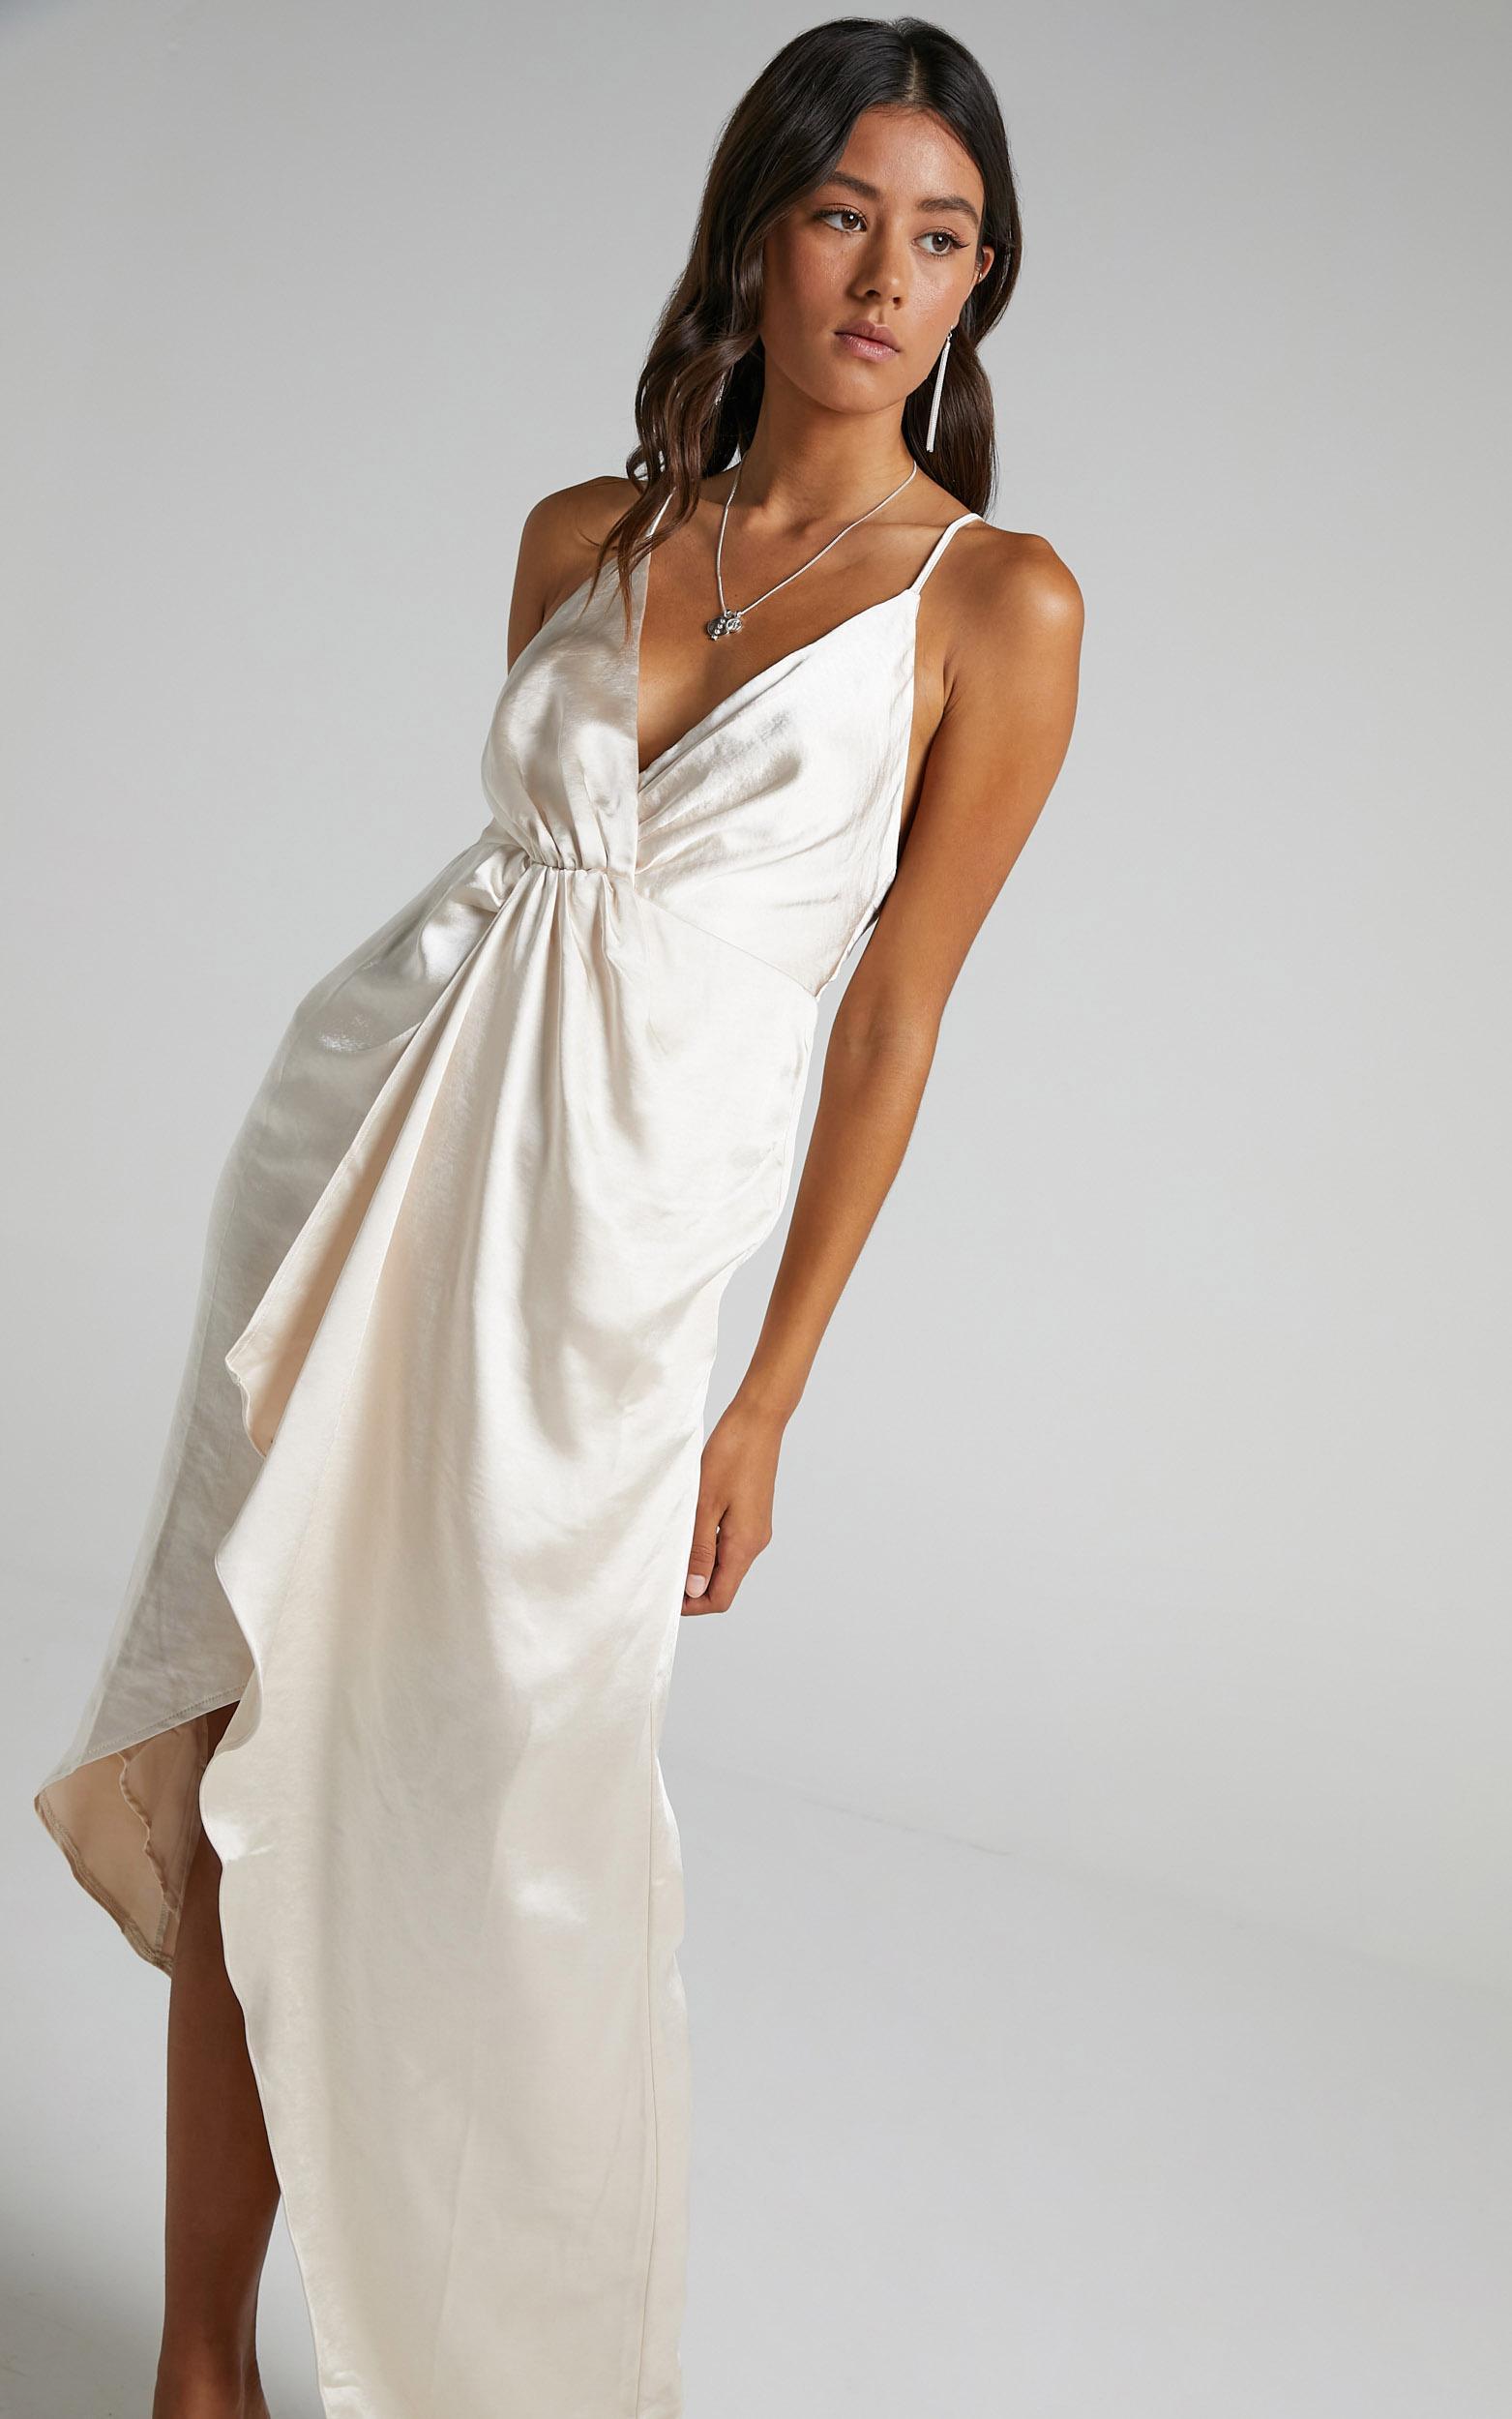 Jayne Twist Front Maxi Dress in Champagne Satin - 4 (XXS), Cream, hi-res image number null